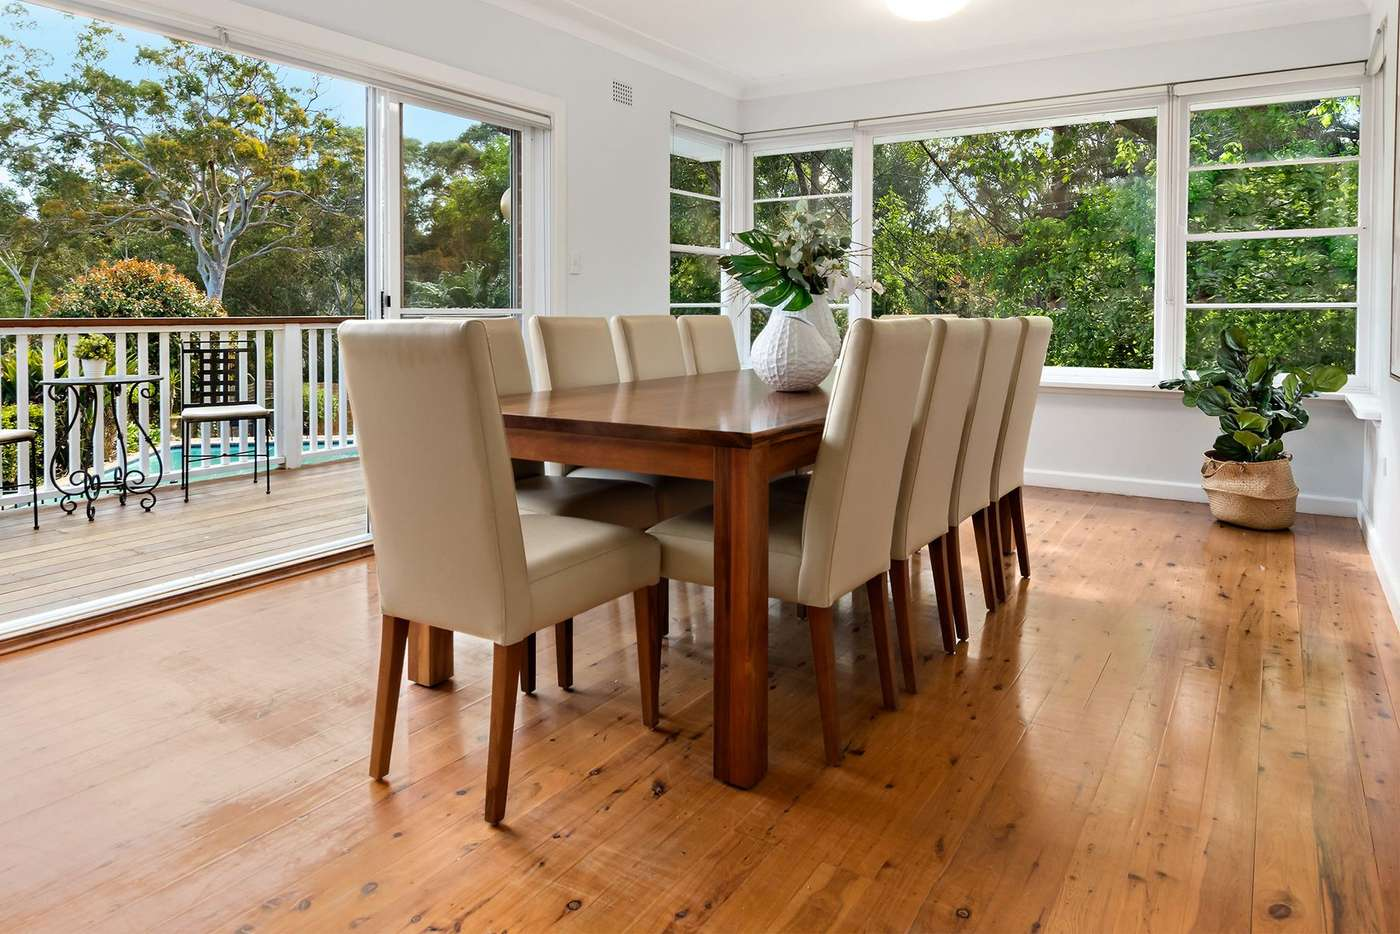 Fifth view of Homely house listing, 1 Lowry Crescent, St Ives NSW 2075